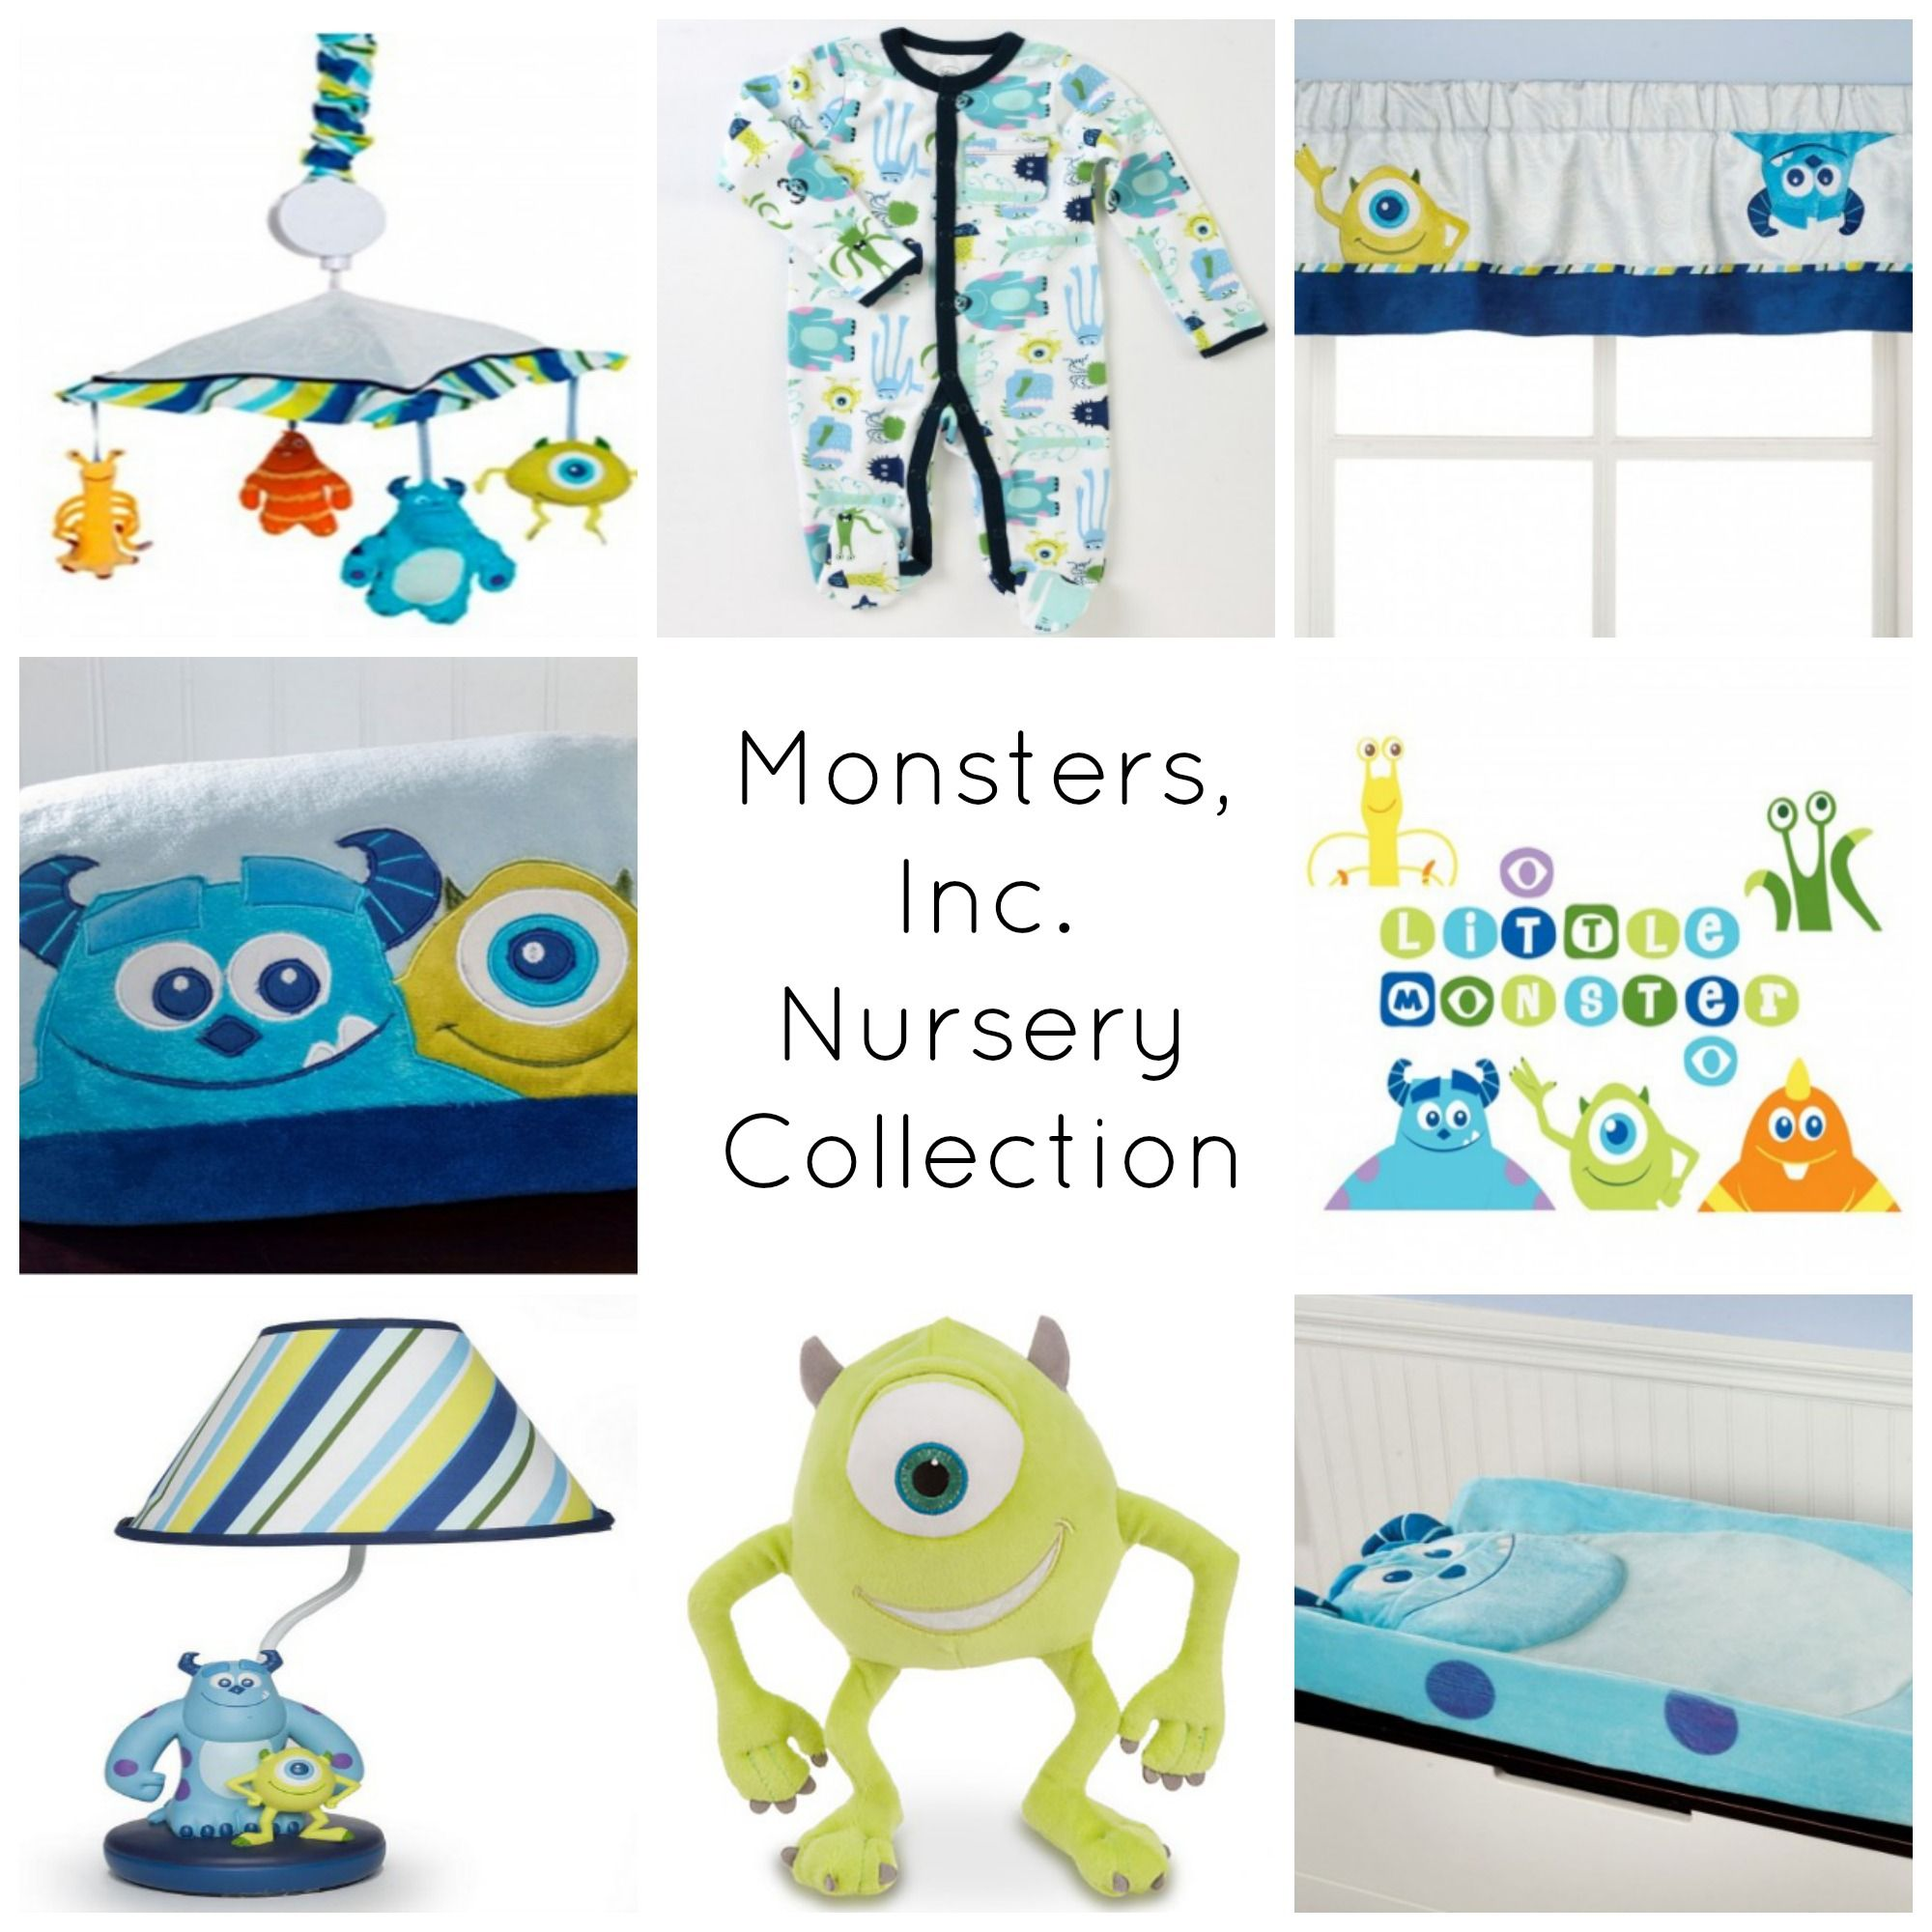 Monsters inc nursery collection for your little one babies monsters inc nursery collection for your little one amipublicfo Choice Image